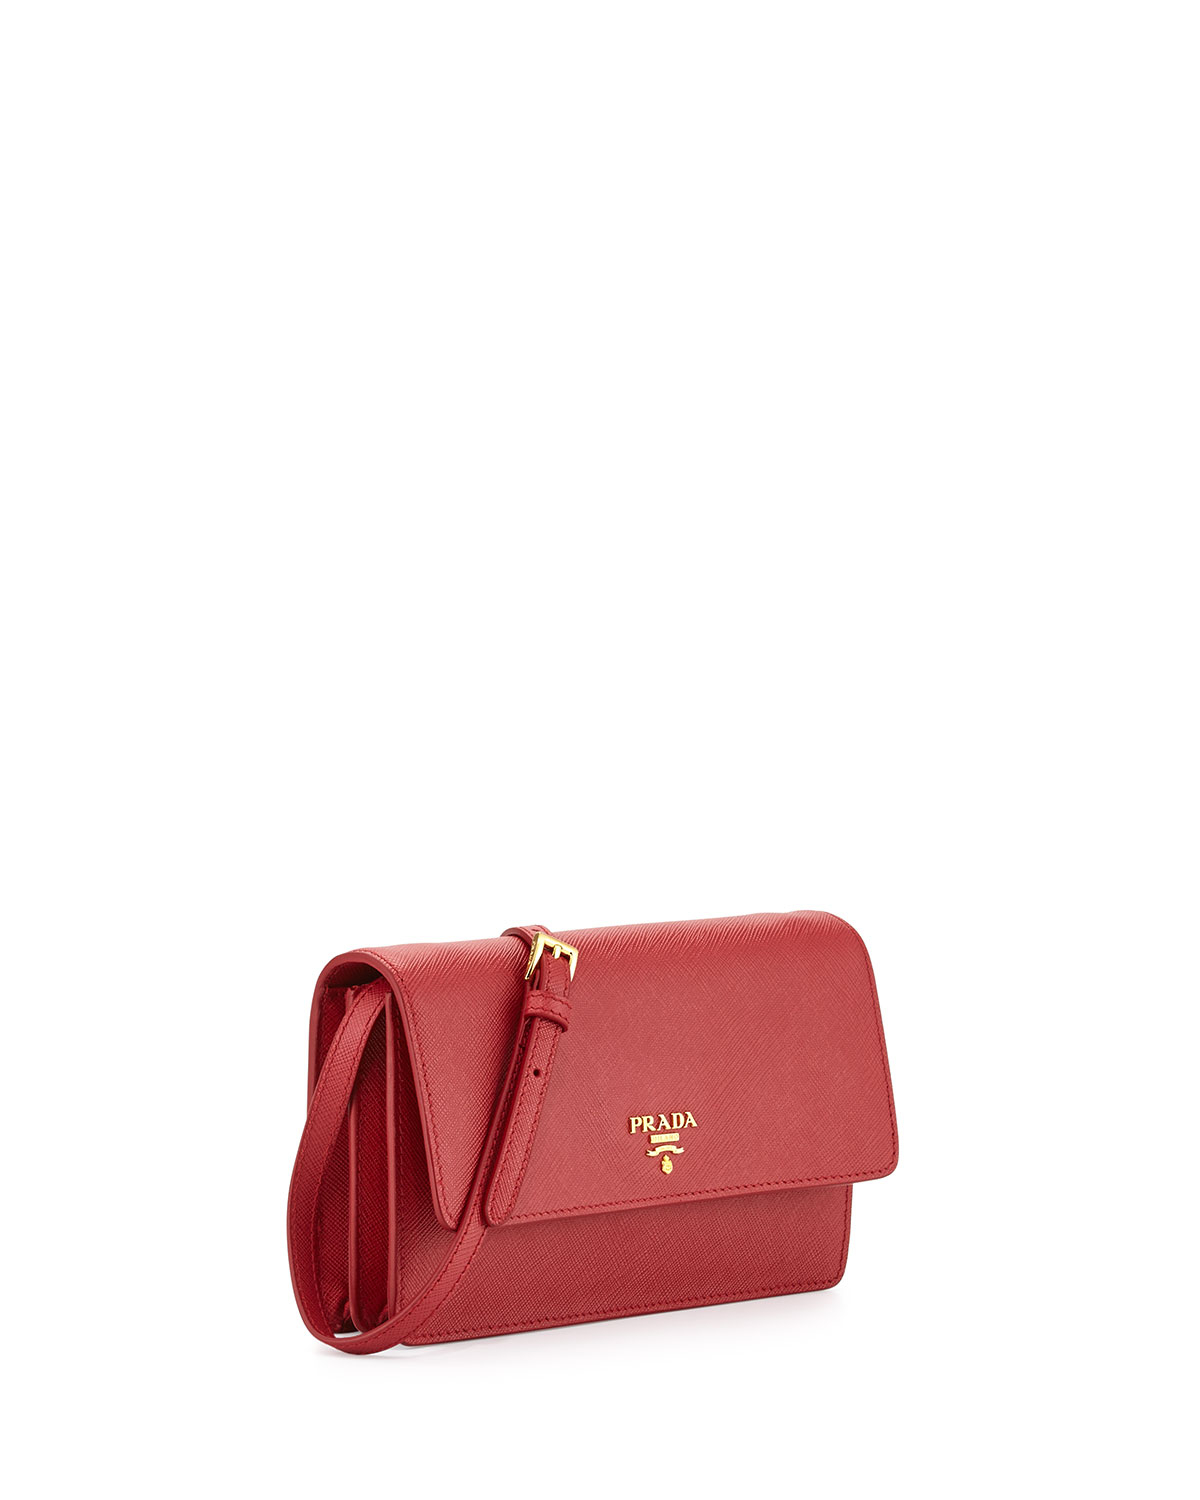 Prada Saffiano Mini Cross-Body Bag in Red | Lyst